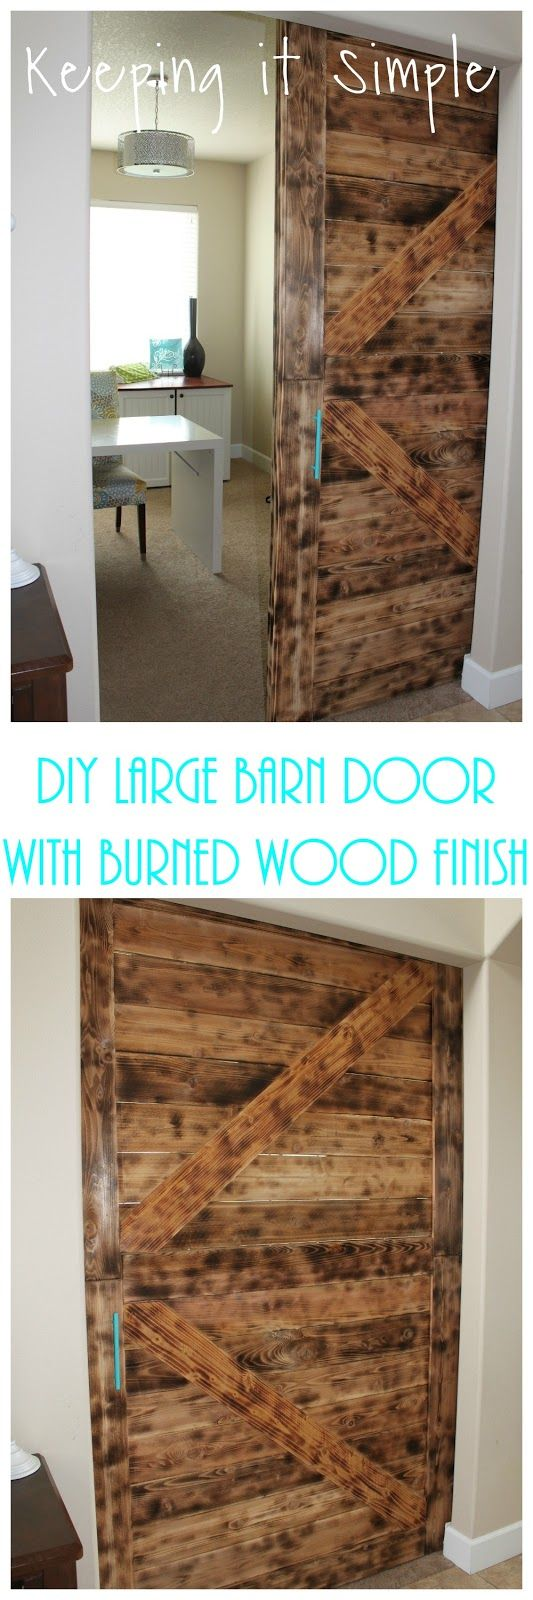 DIY Large Barn Door with Burned Wood Finish- Perfect for ...